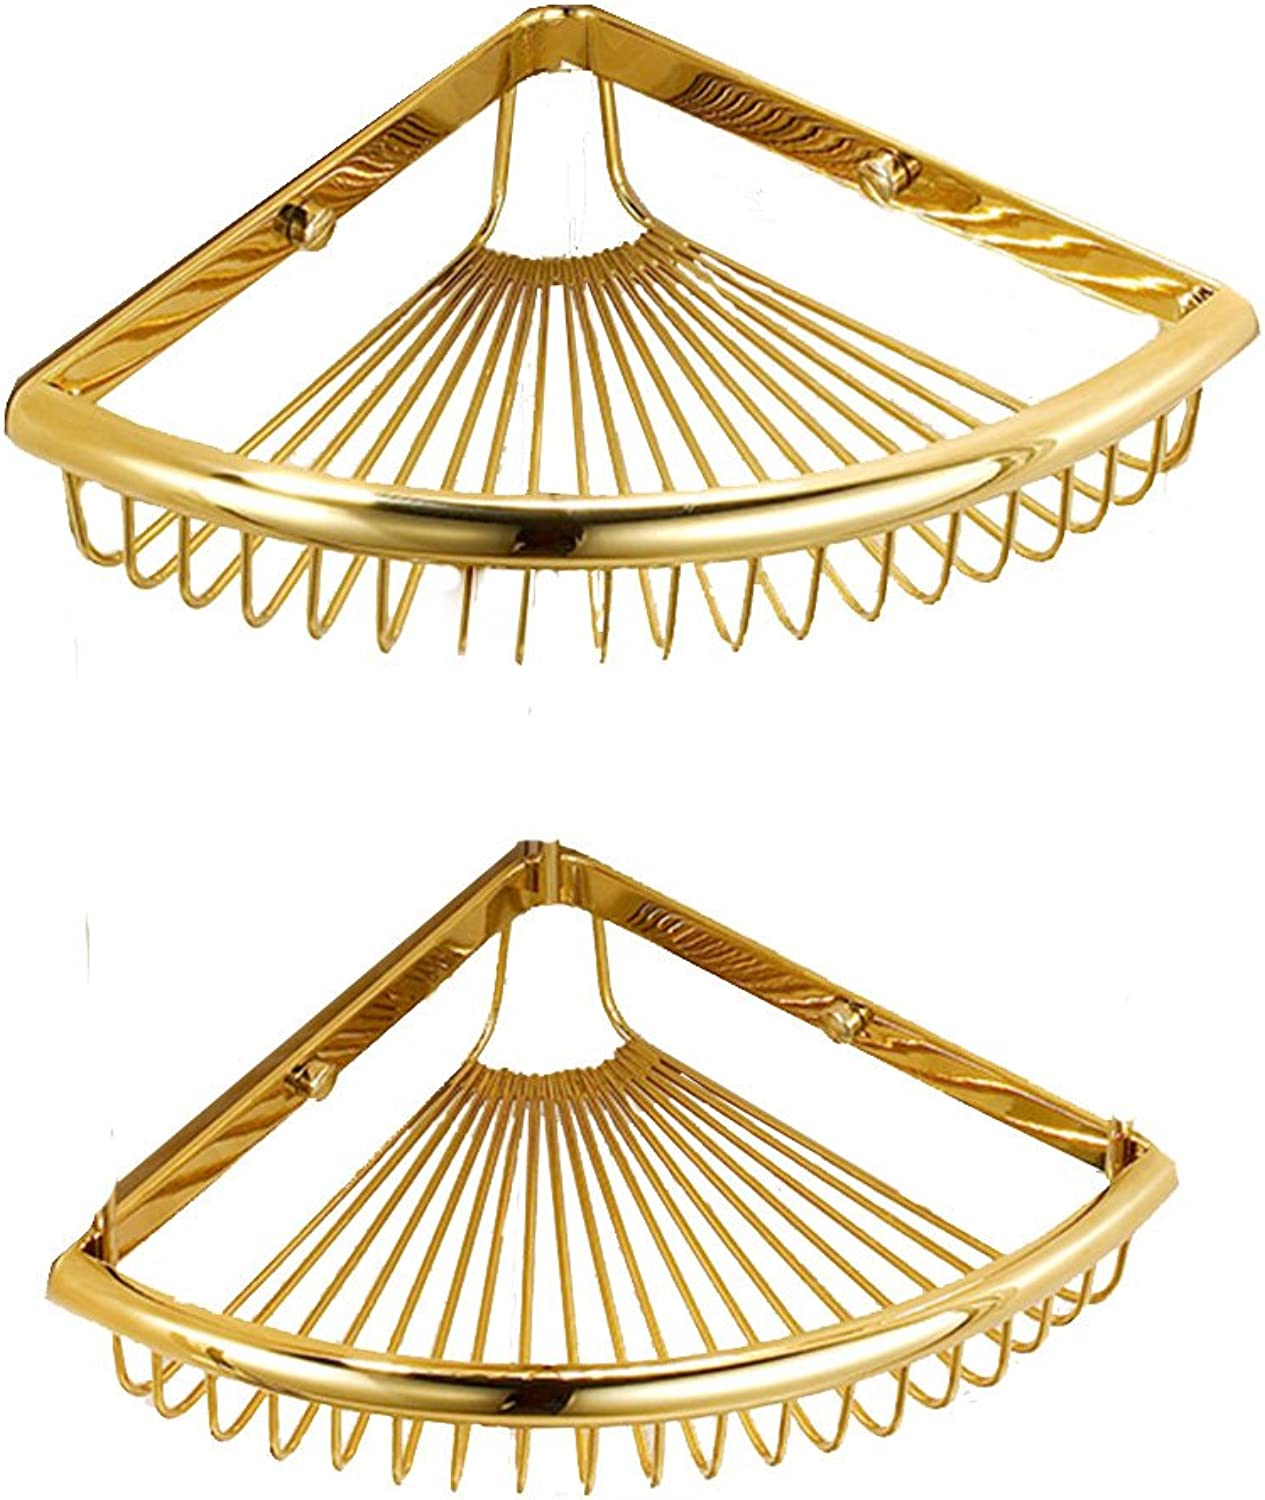 Shelves Bathroom Fine Copper Racks Storage Baskets Corner Triangle Basket Basket Bathroom Shelf Pendant Antique 2 Layer gold